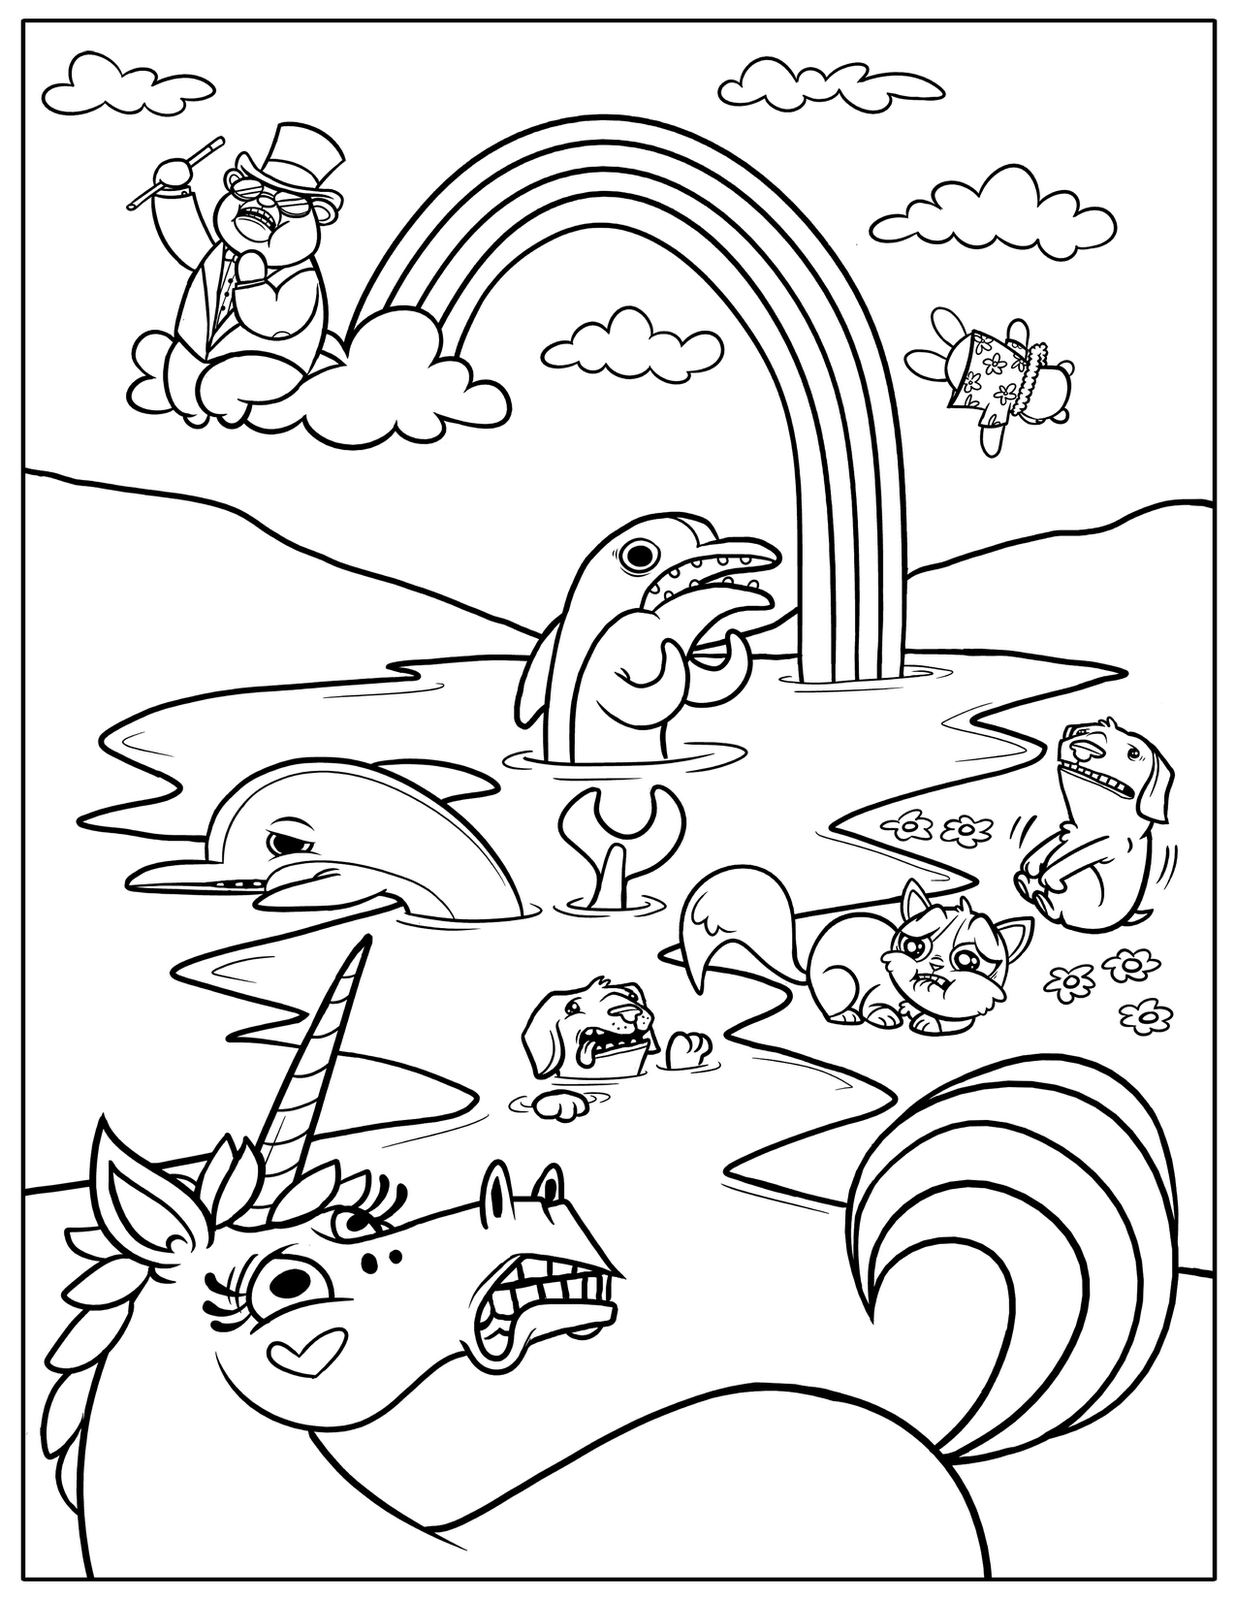 Dashing image pertaining to rainbow coloring page printable